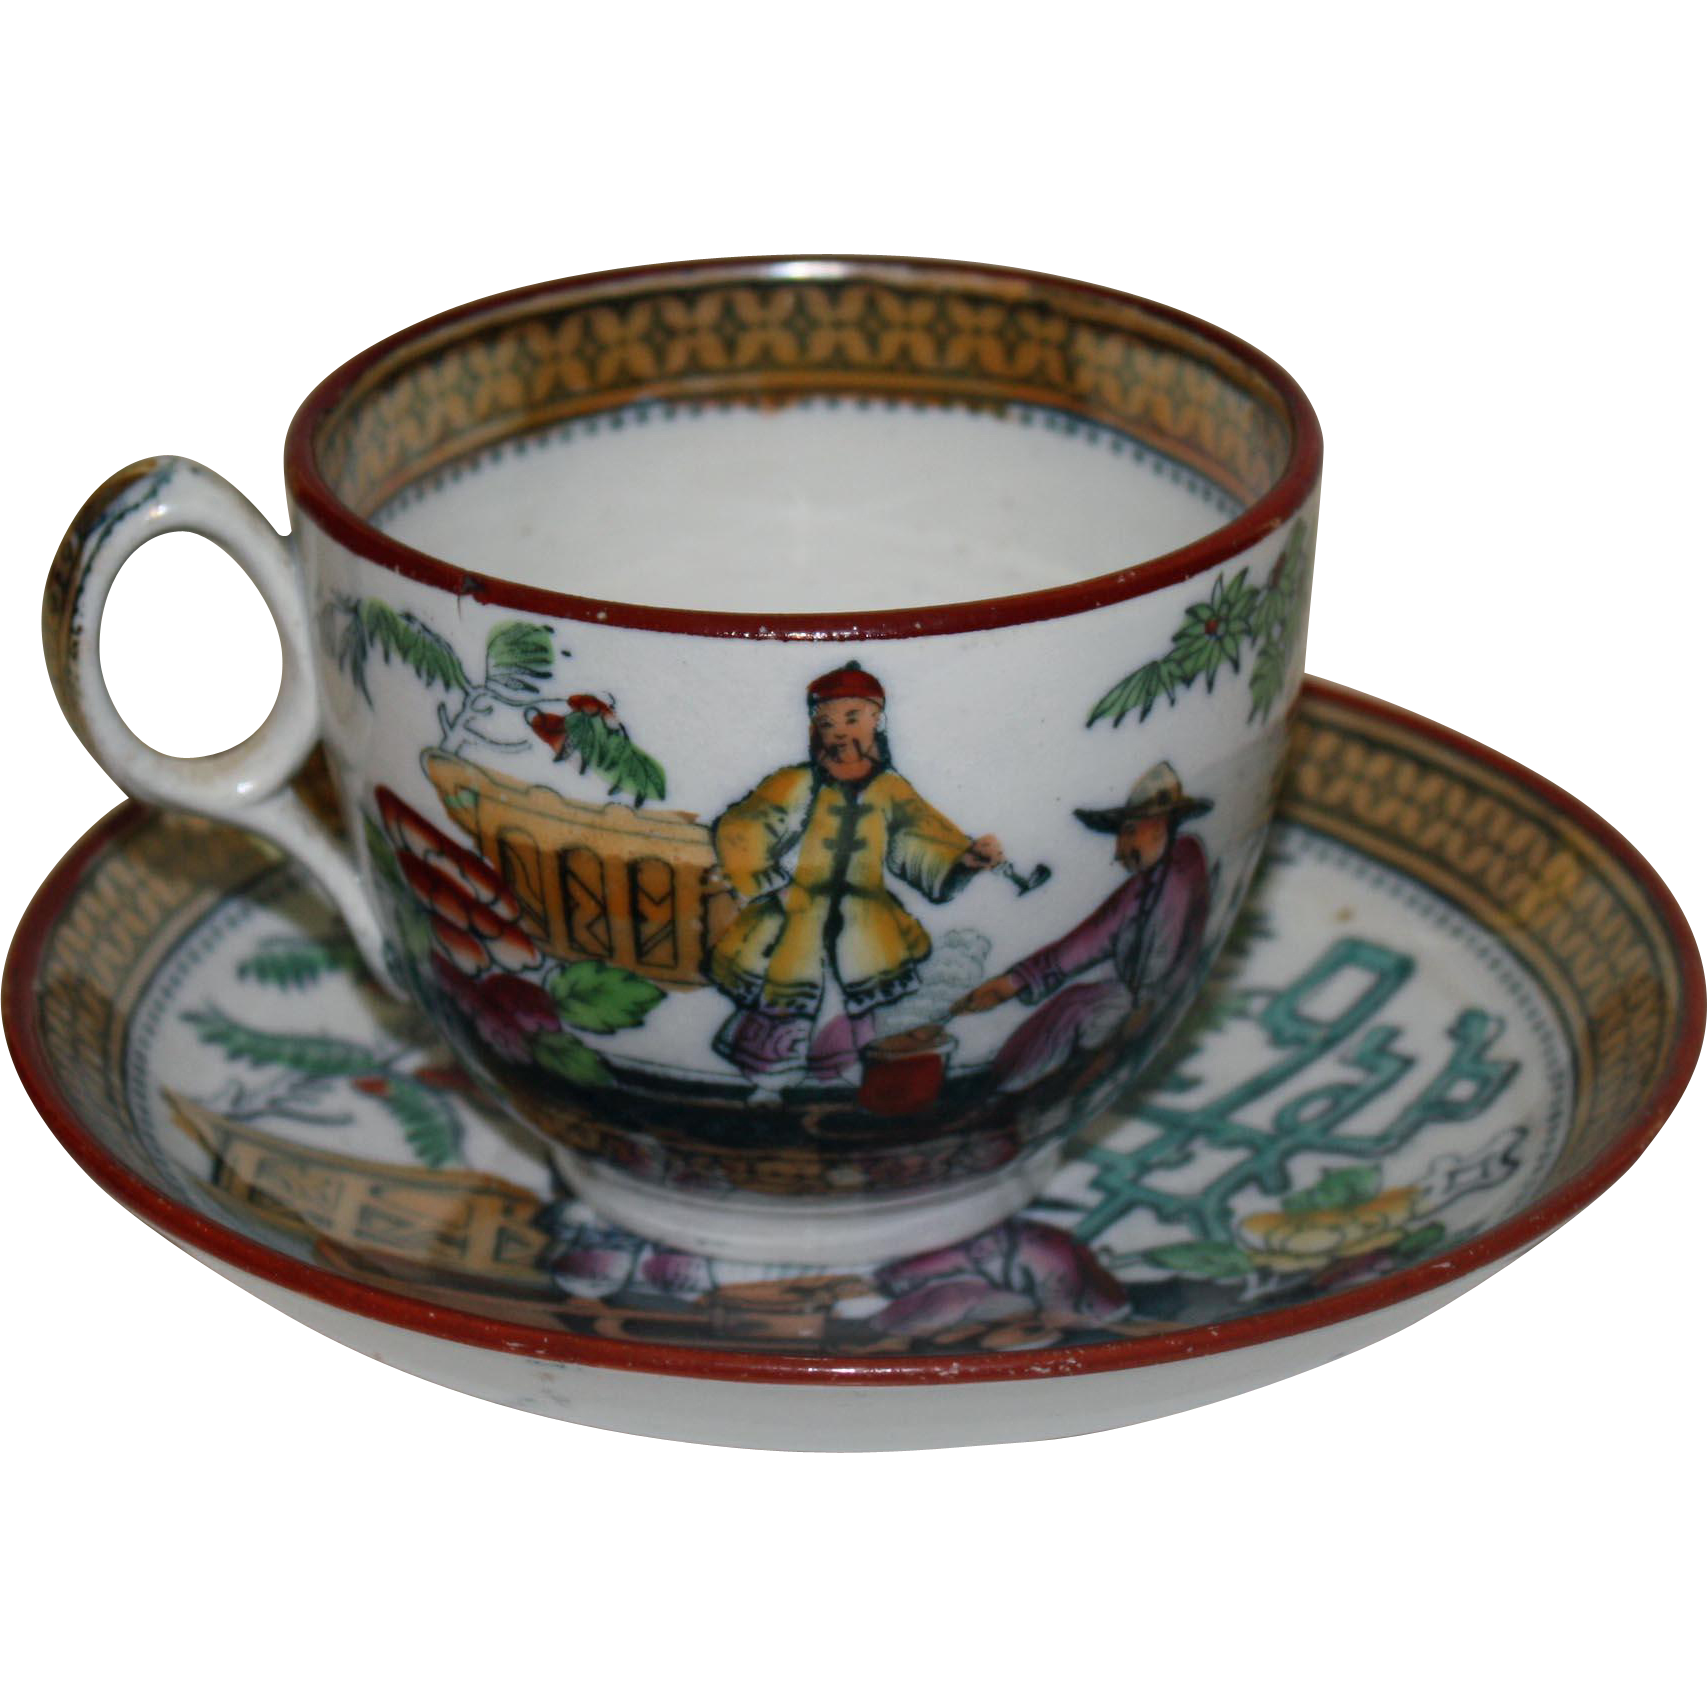 Pekin Pattern Cup & Saucer Transferware by Booth c. 1885